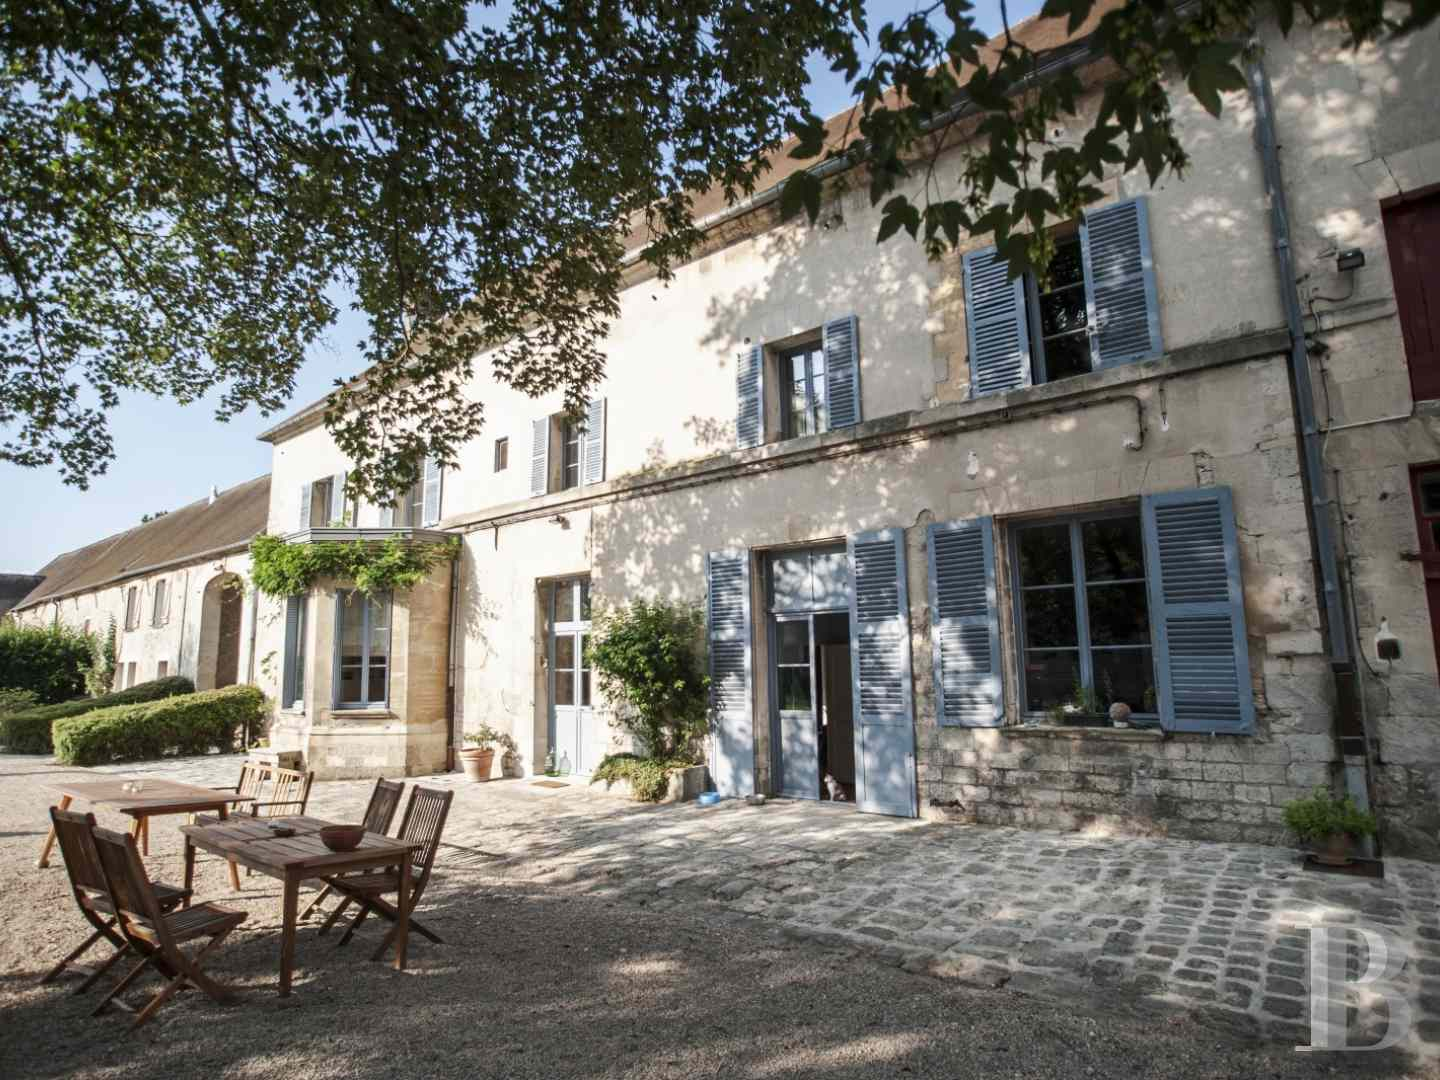 character properties France picardy character houses - 2 zoom